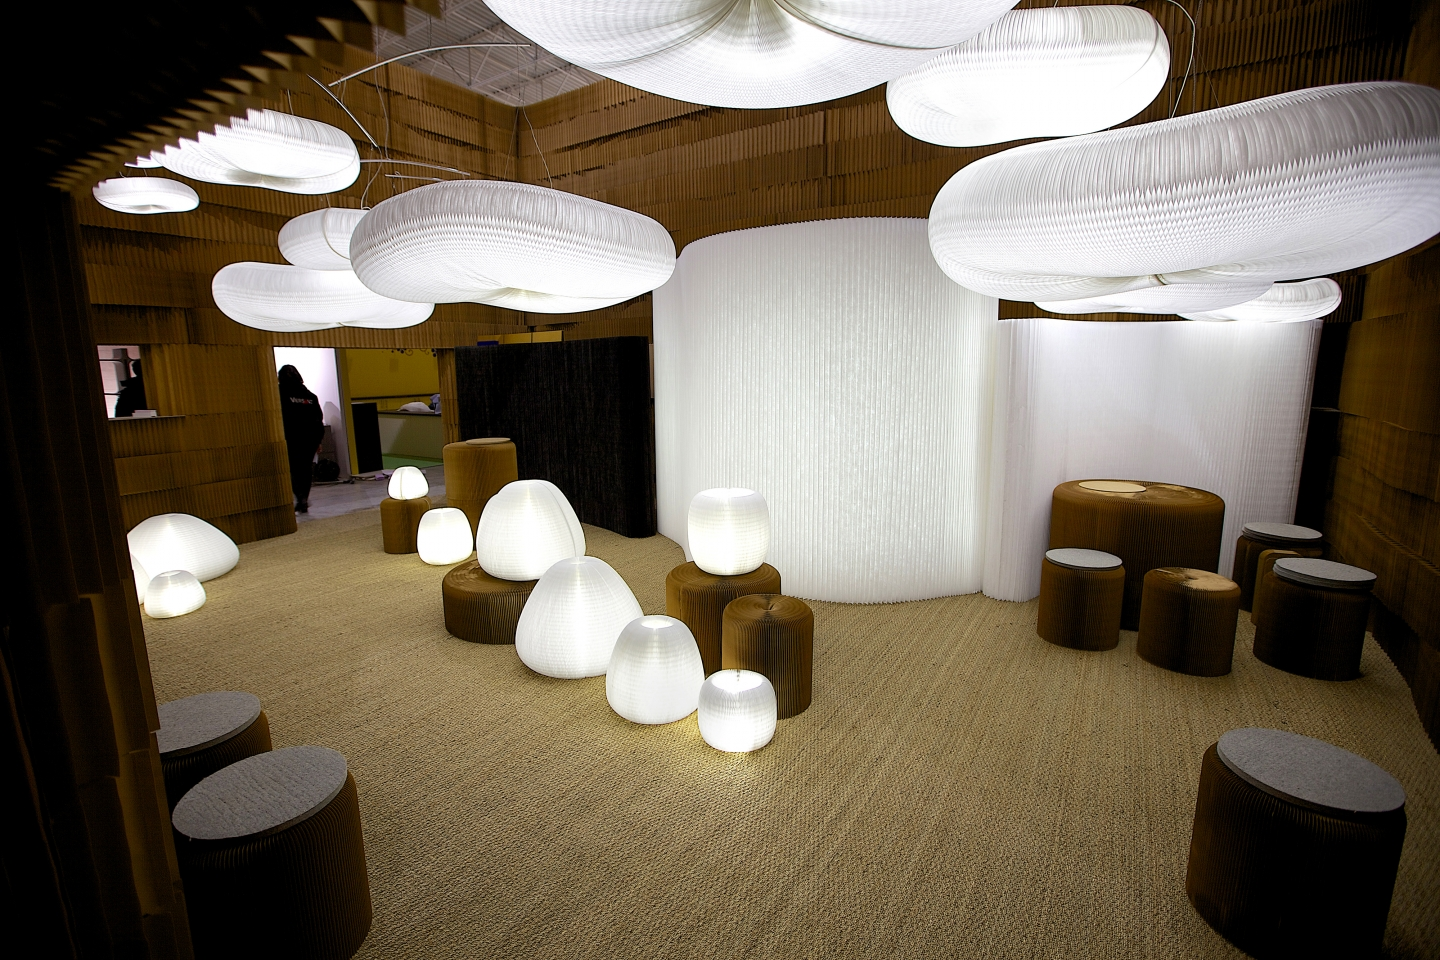 acoustic pendant lighting - The complete installation at Maison & Objet 2013, featuring urchin and cloud softlight, paper softblocks and textile softwall illuminated by LED.